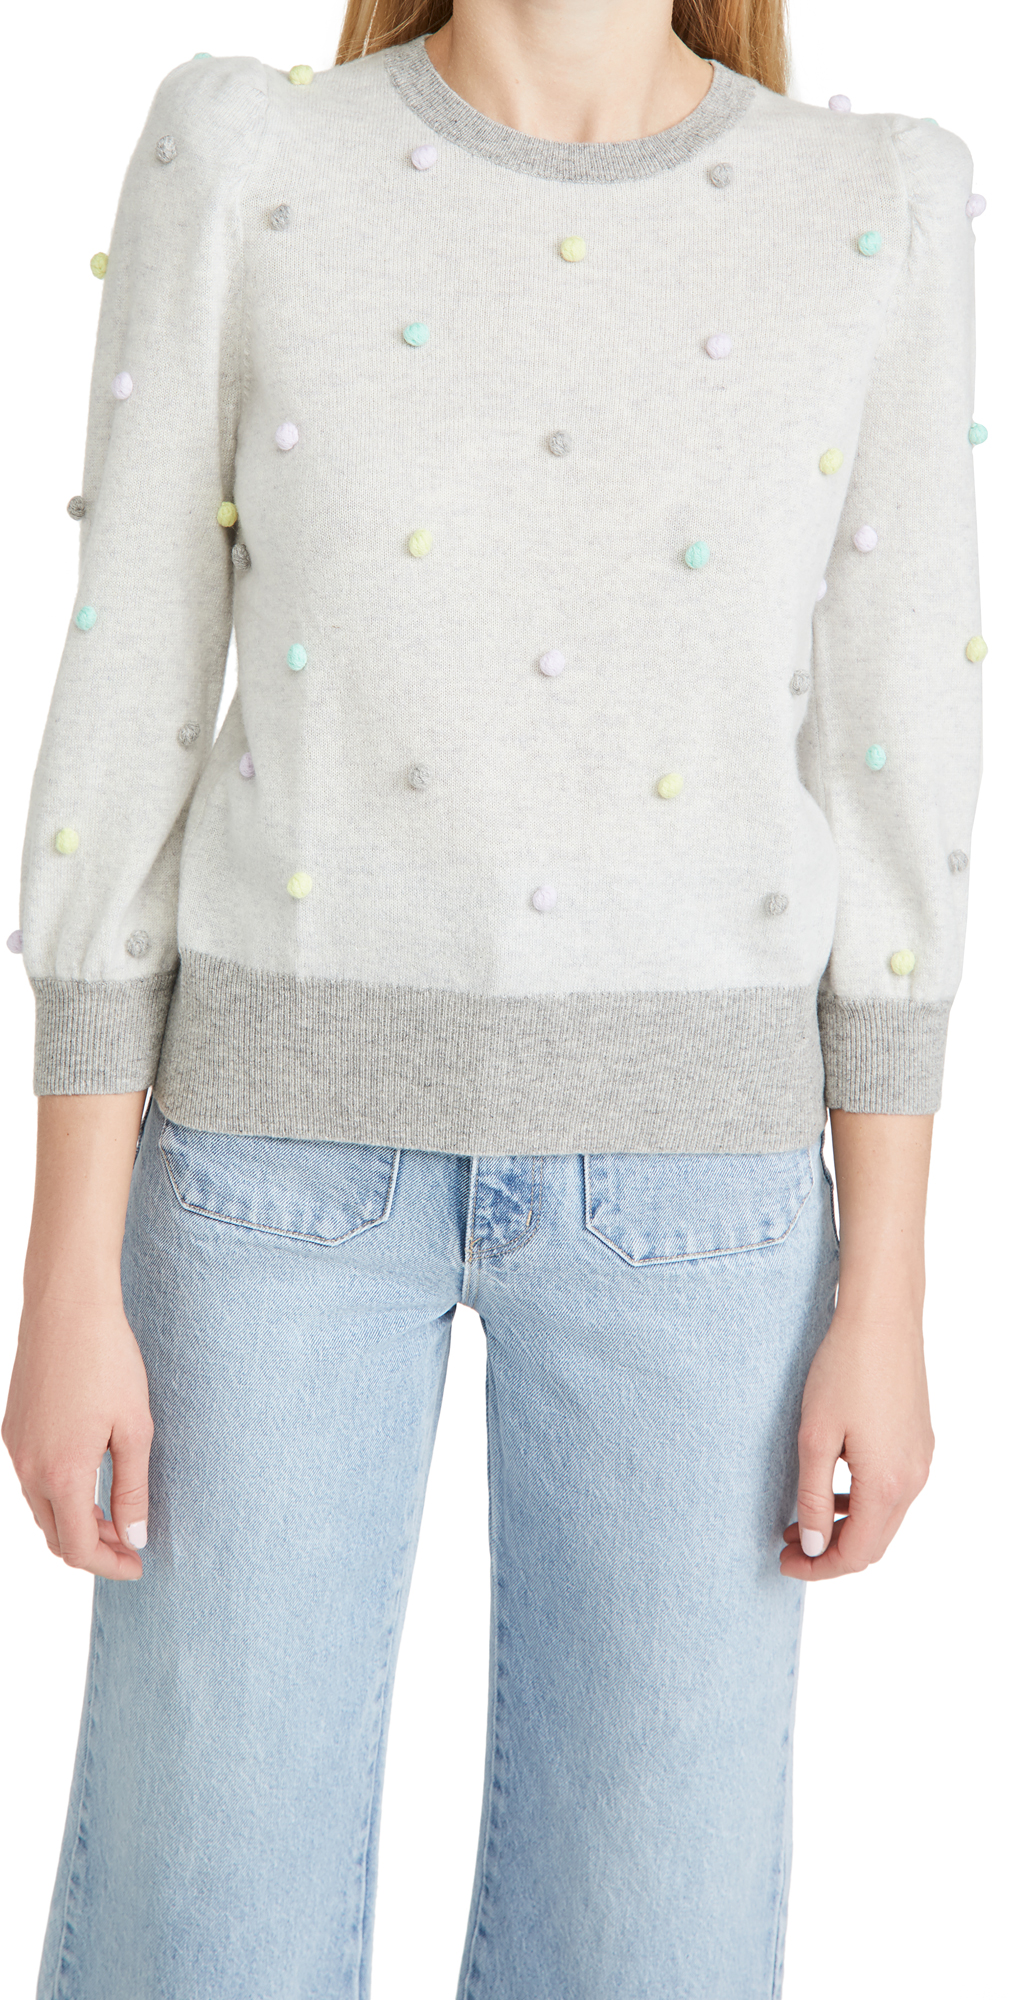 Autumn Cashmere Multi Color Popcorn Puff Sleeve Cashmere Sweater